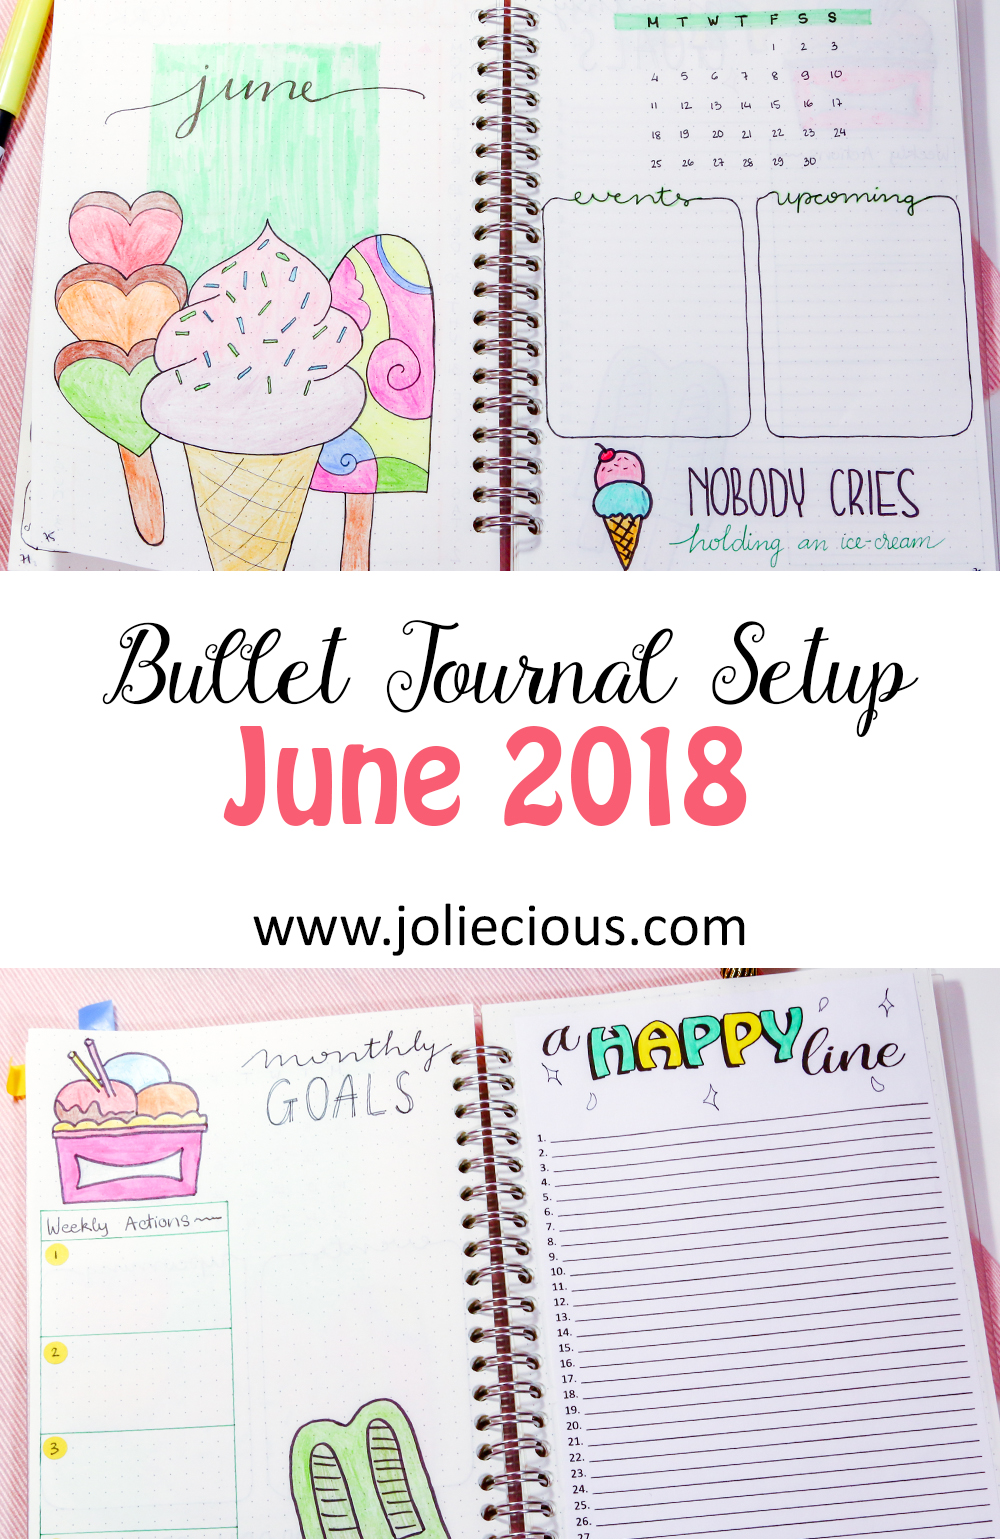 june 2018 bullet journal setup plan with me